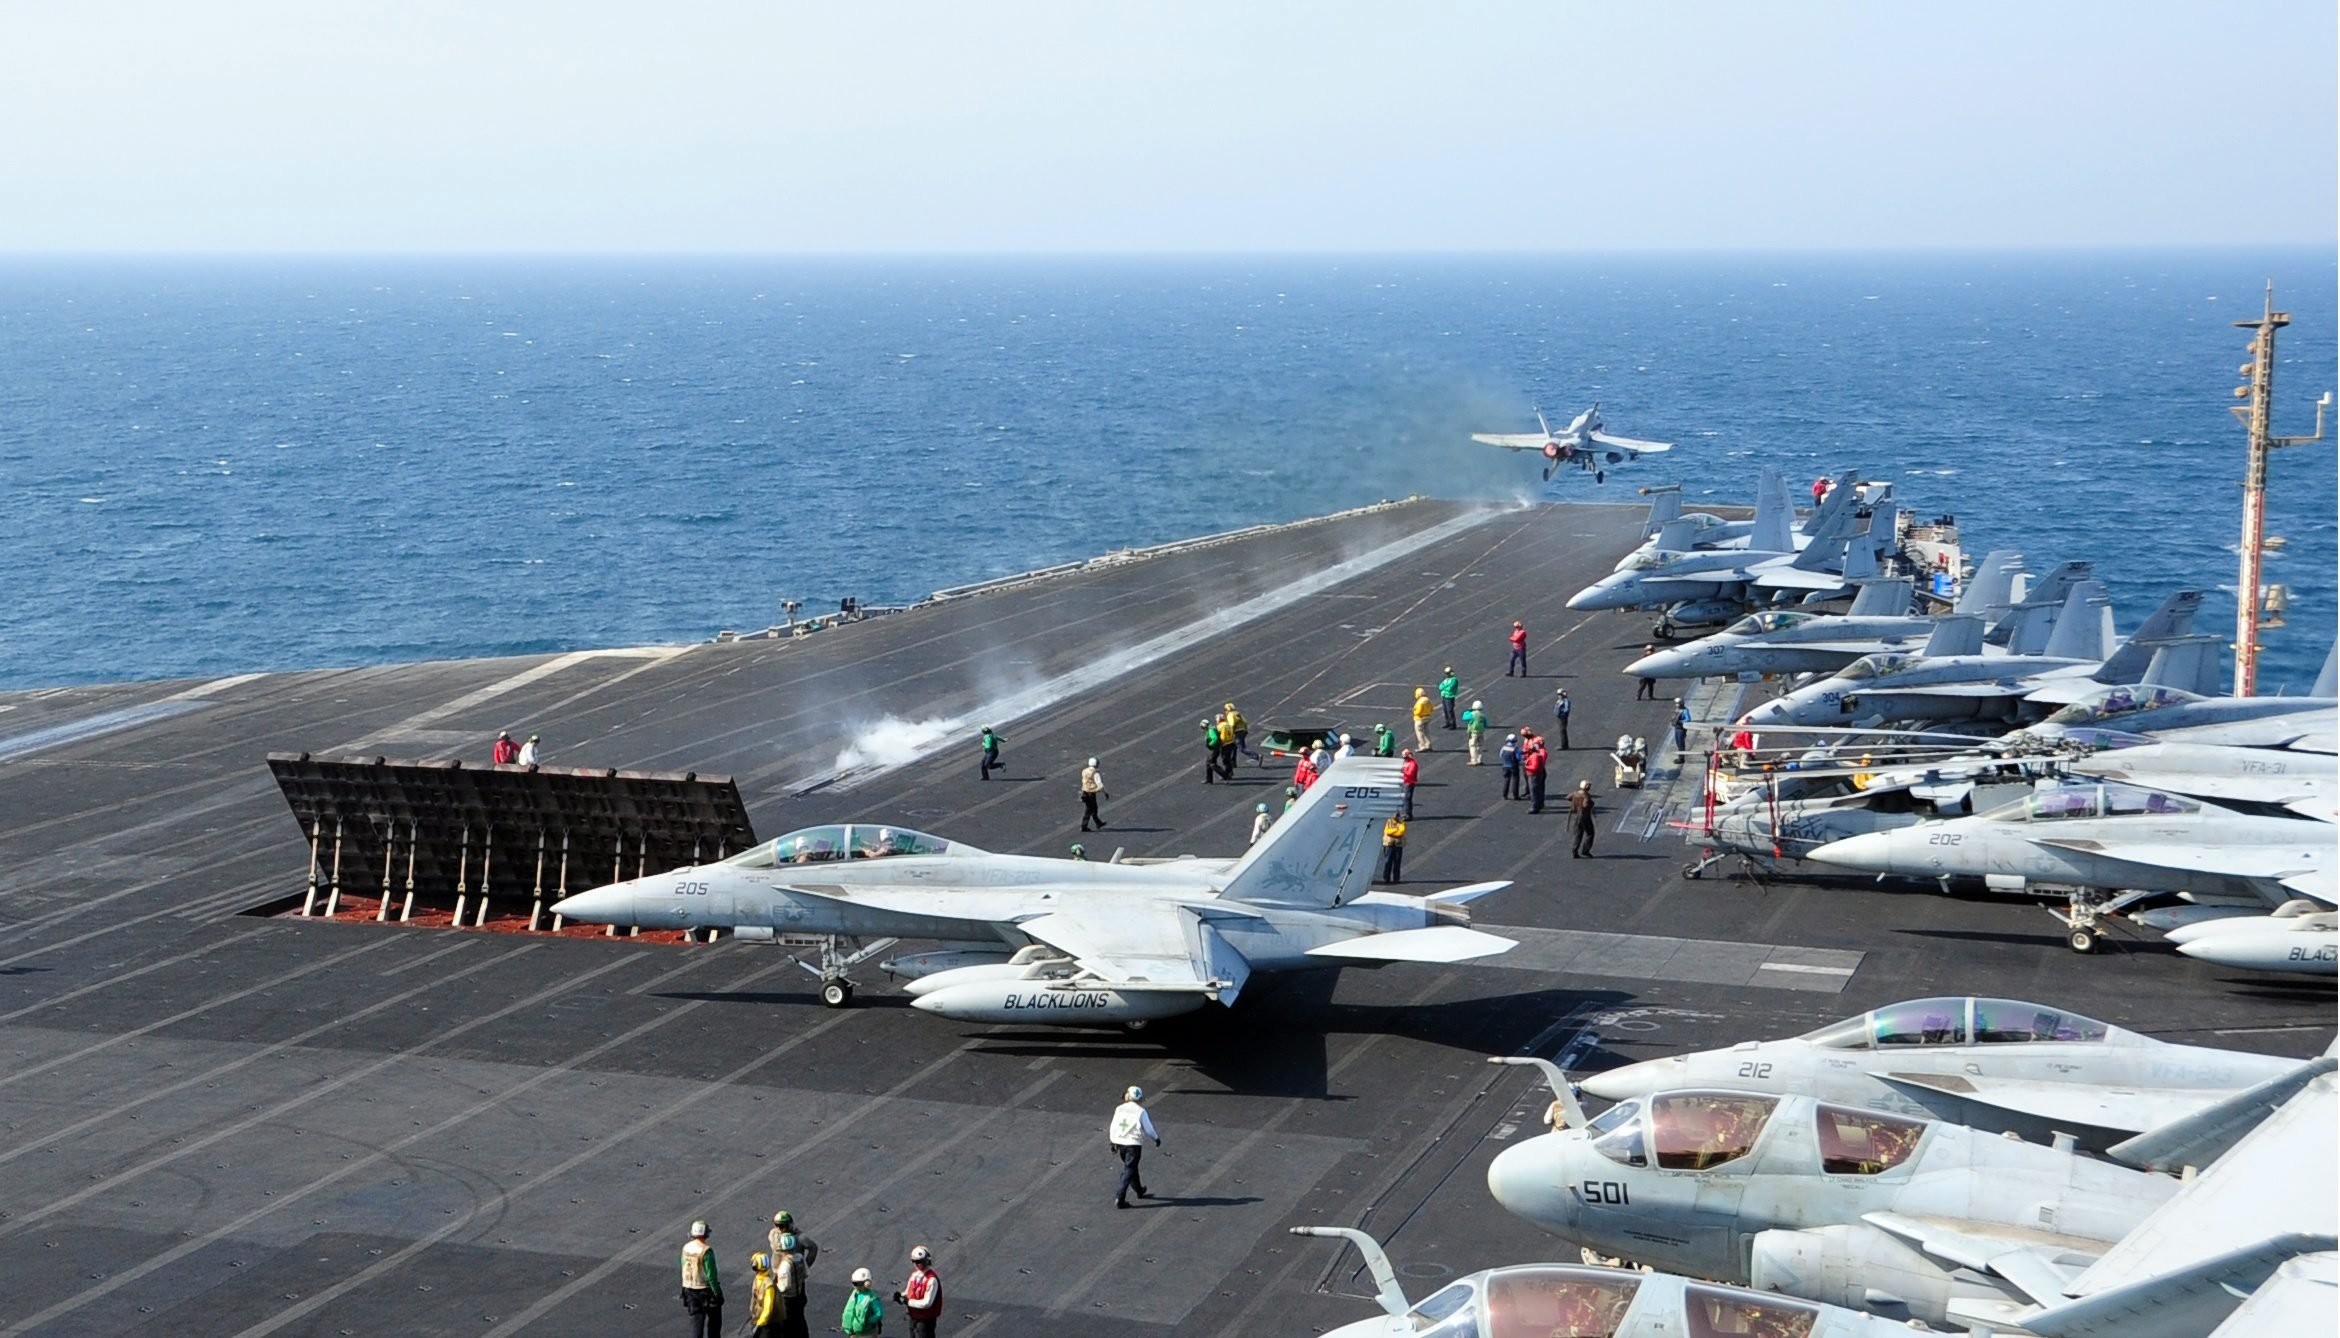 US Department of Defense (DOD) shows an aircraft launching from the flight deck of the aircraft carrier USS George H.W. Bush in the Arabian Gulf on Oct. 13, 2014.